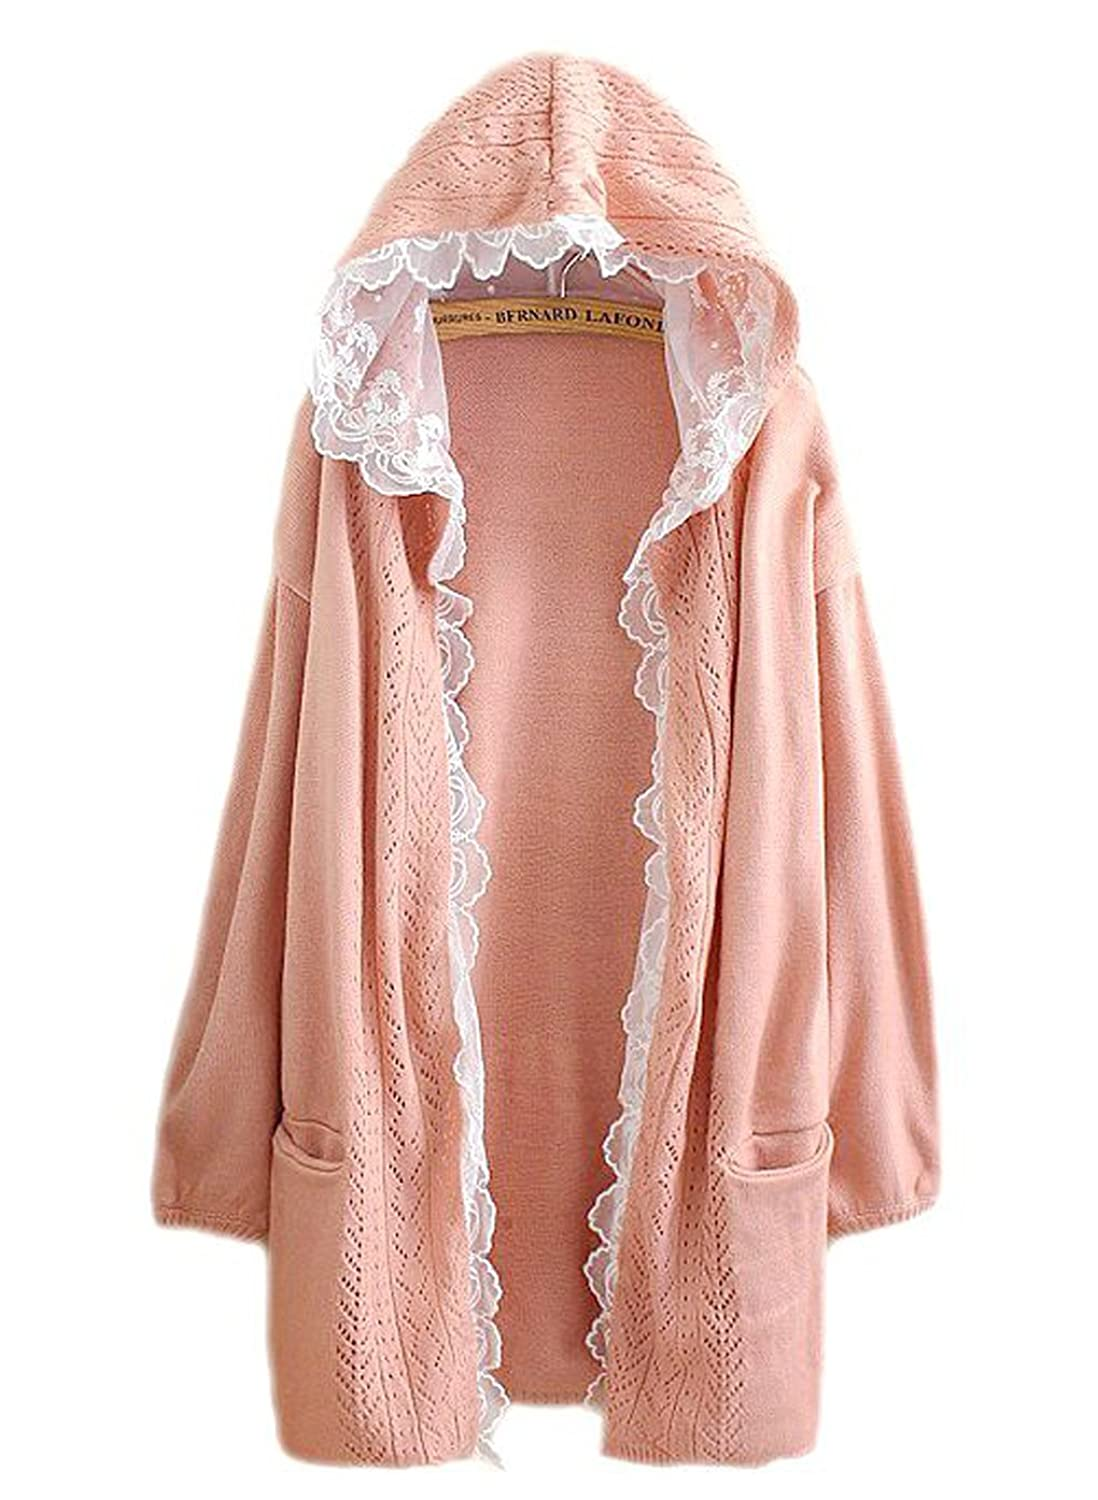 hqclothingbox Women Kawaii Harajuku Japanese Casual Lace Layered Jacket Coat Knitted Lace Sweater Cardigan